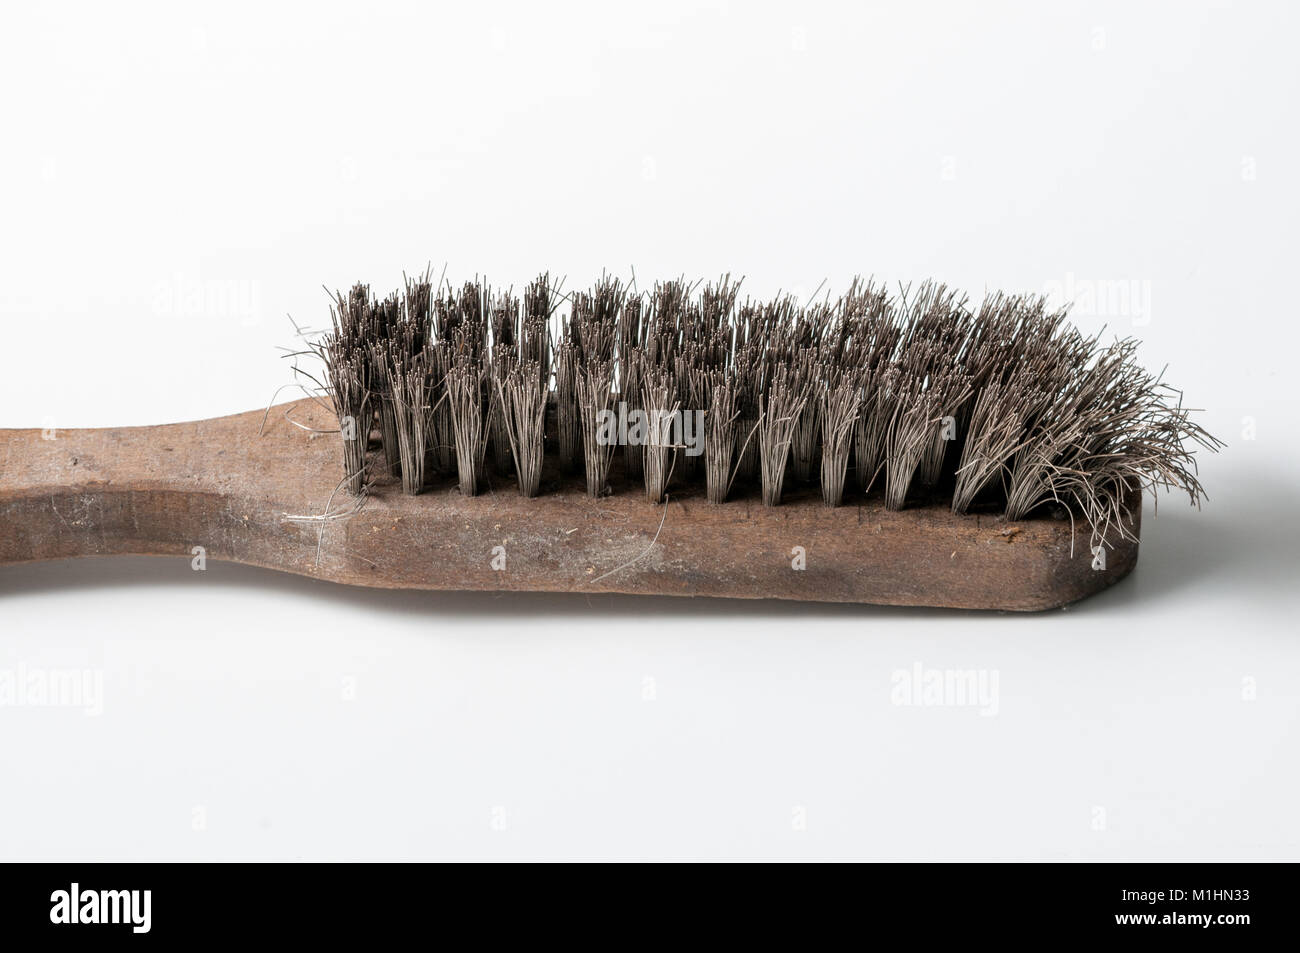 old metal brush for cleaning metal surfaces, on white background - Stock Image